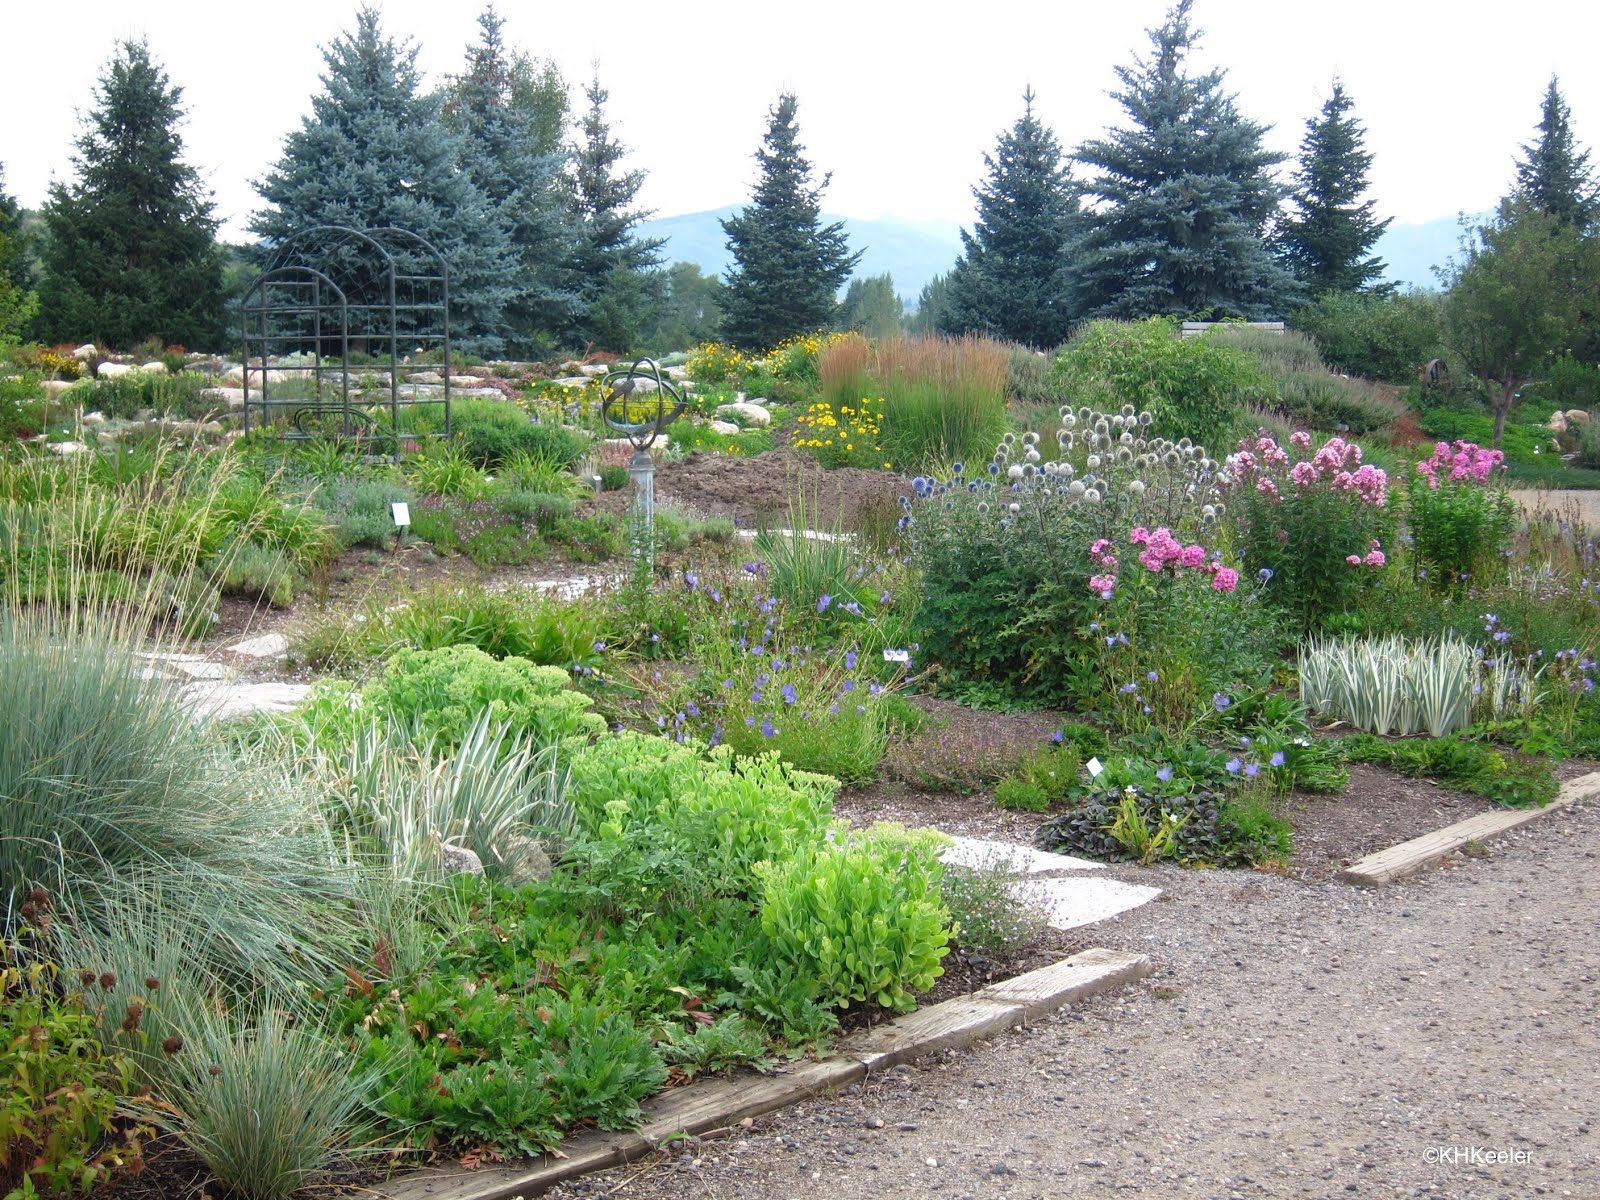 A Wandering Botanist Visiting Northern Colorado Yampa River Botanic Park